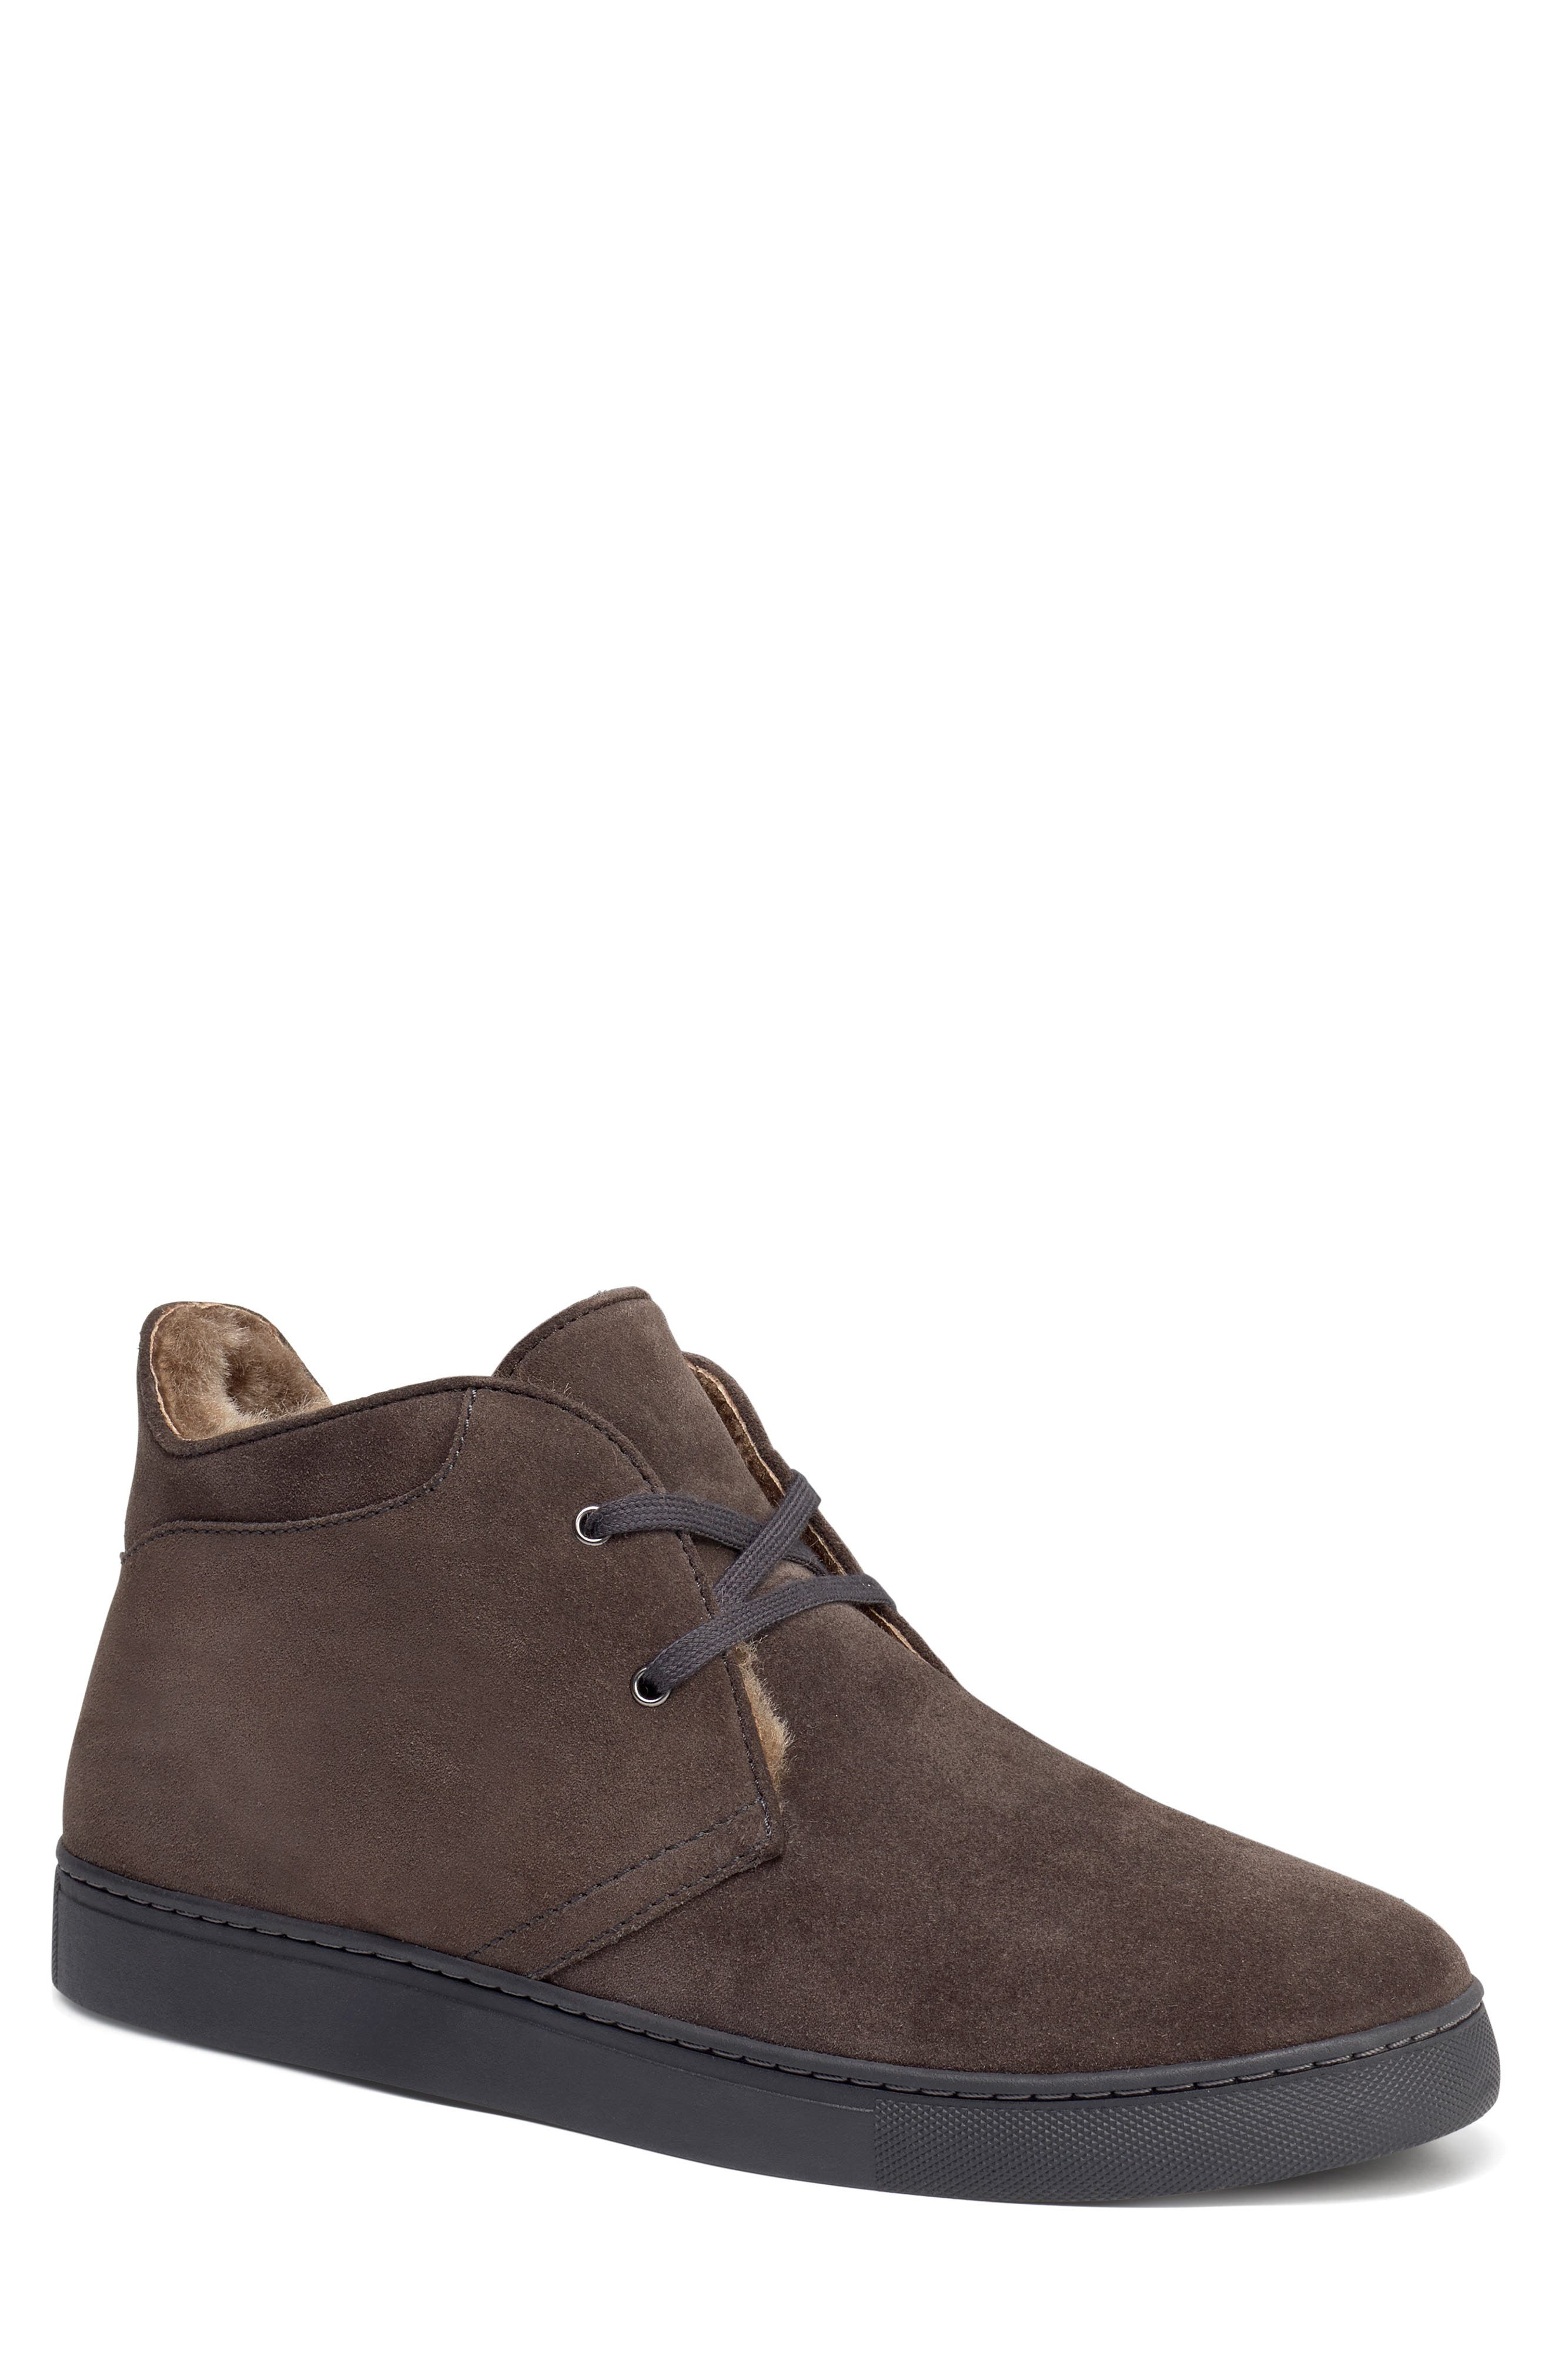 Ariston Genuine Shearling Chukka Boot,                         Main,                         color, CHARCOAL SUEDE